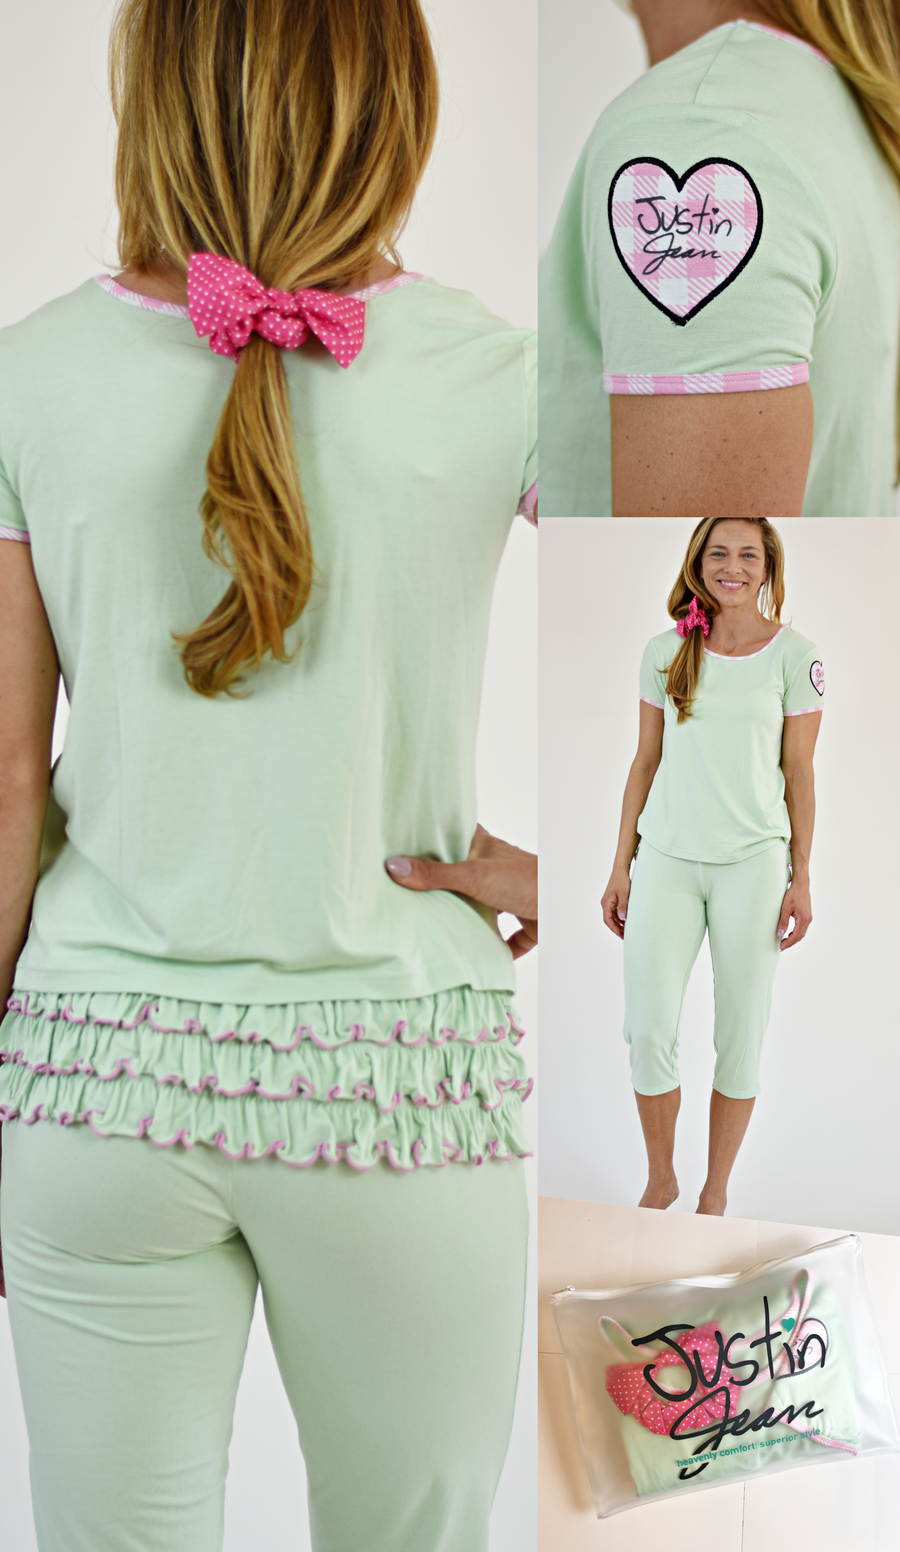 Justin Jean® va va Vasto!™ Capri Pajama Set for Women: 6 colors!